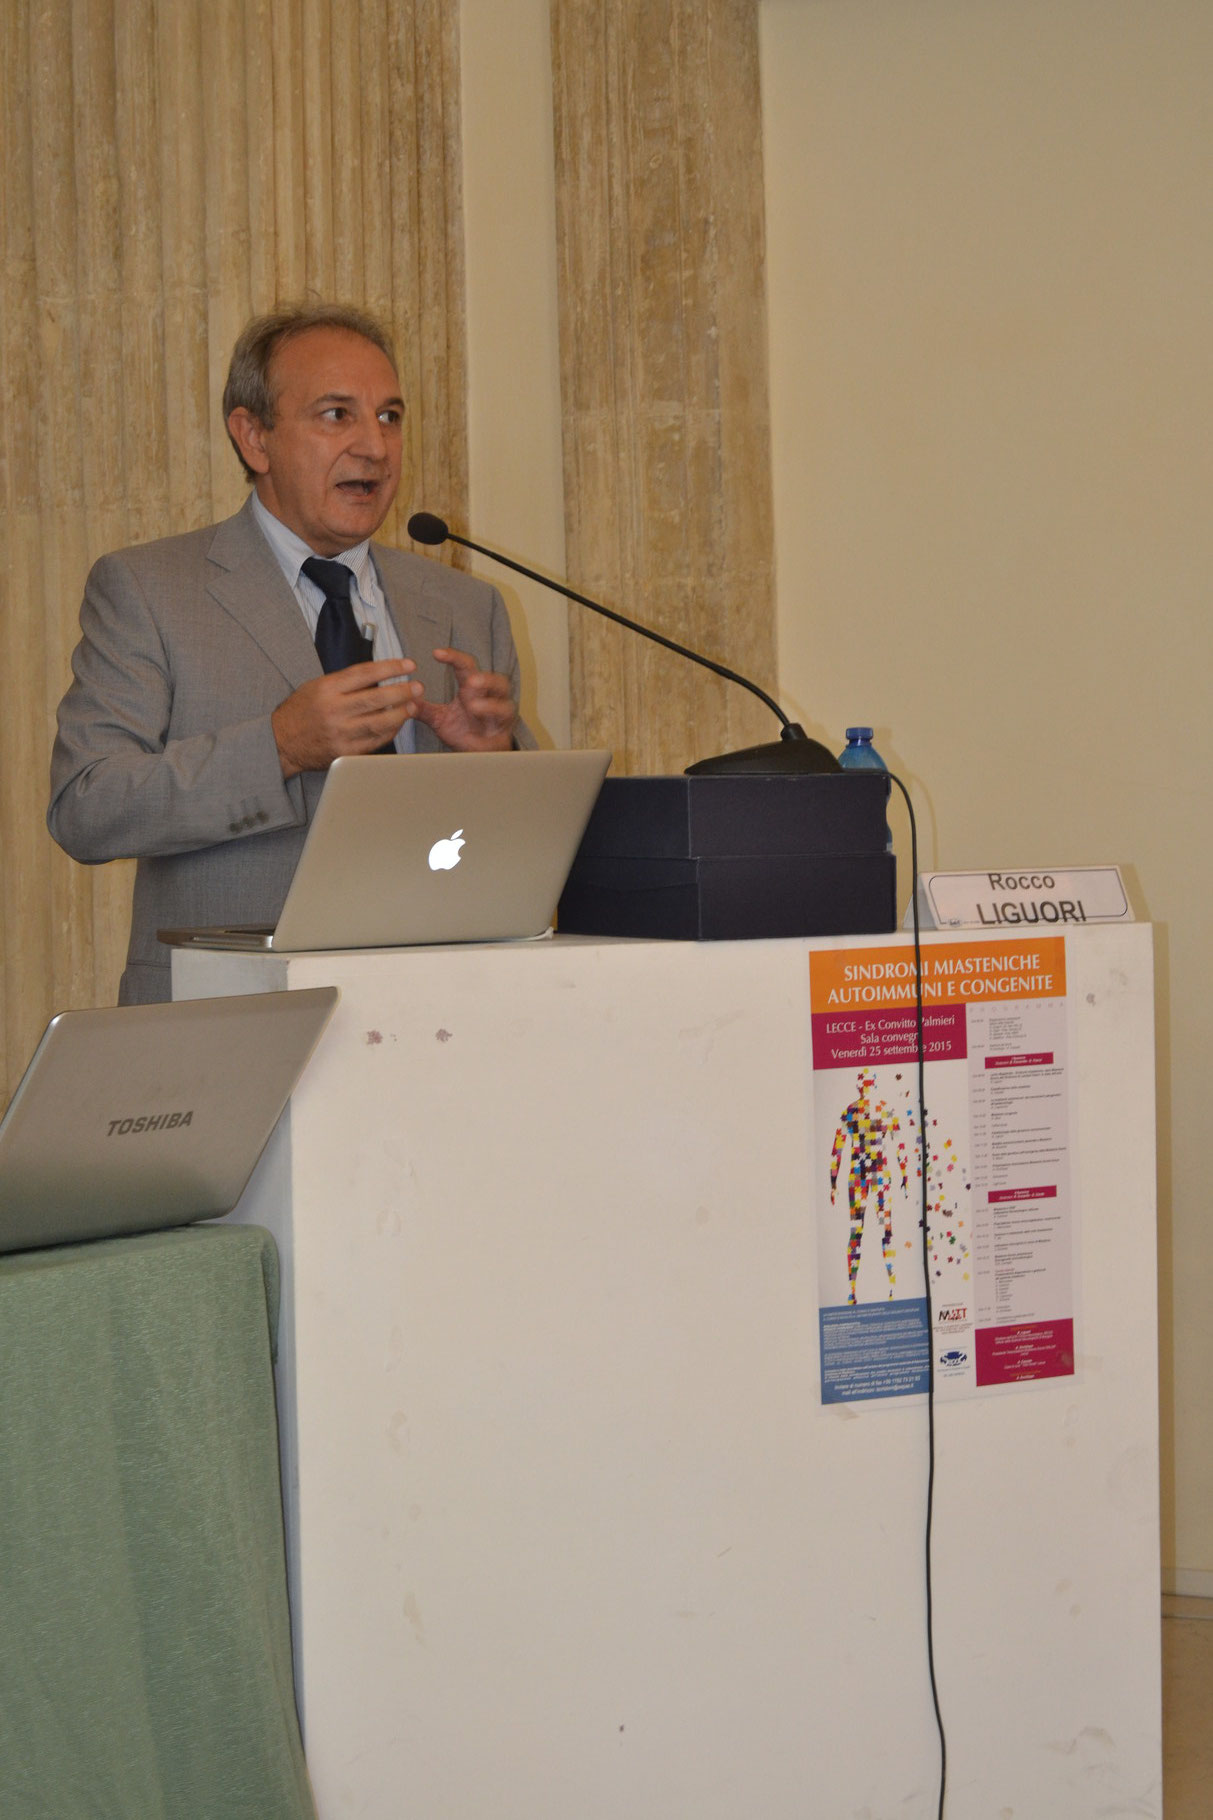 Prof. Rocco Liguori, Presidente Comitato Scientifico, Direttore Clinica Neurologica Università di Bologna. Lectio Magistralis: Sindromi miasteniche, dalla Miastenia Gravis alla Sindrome di Lambert Eaton: lo stato dell'arte.